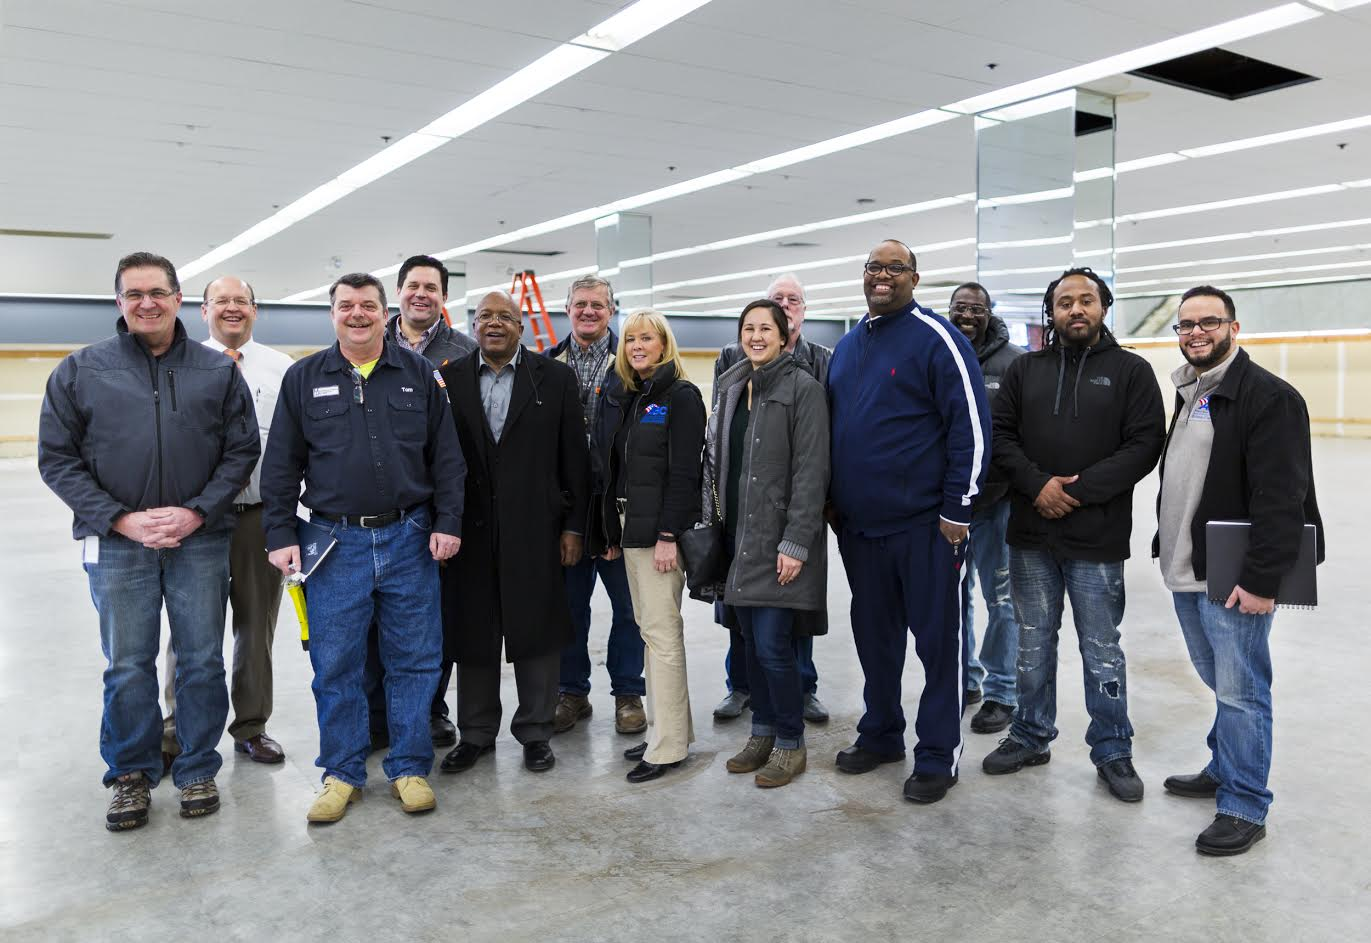 Representatives from ProjectHOOD, Manhattan Mechanical Services, Associated Builders and Contractors, Citgo and Metro Ford